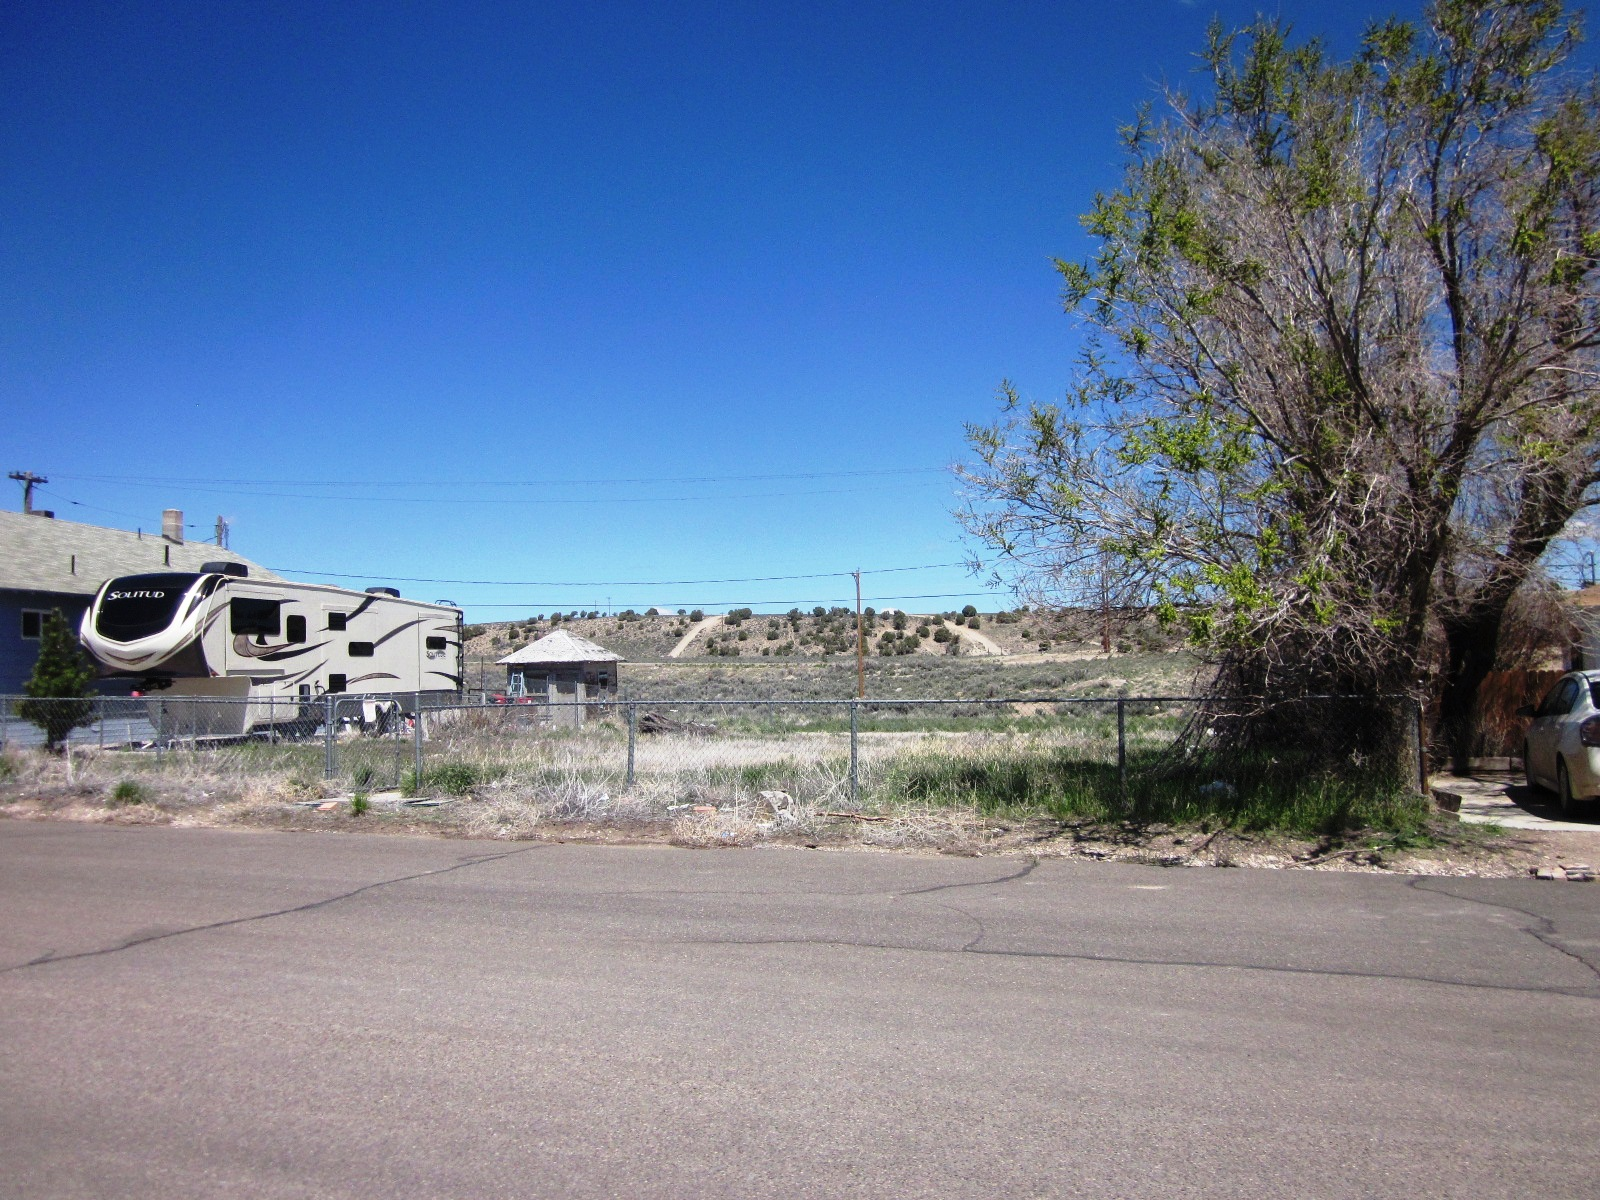 New Ruth Vacant Home Lot – All Utilities Available – Near Ely, NV